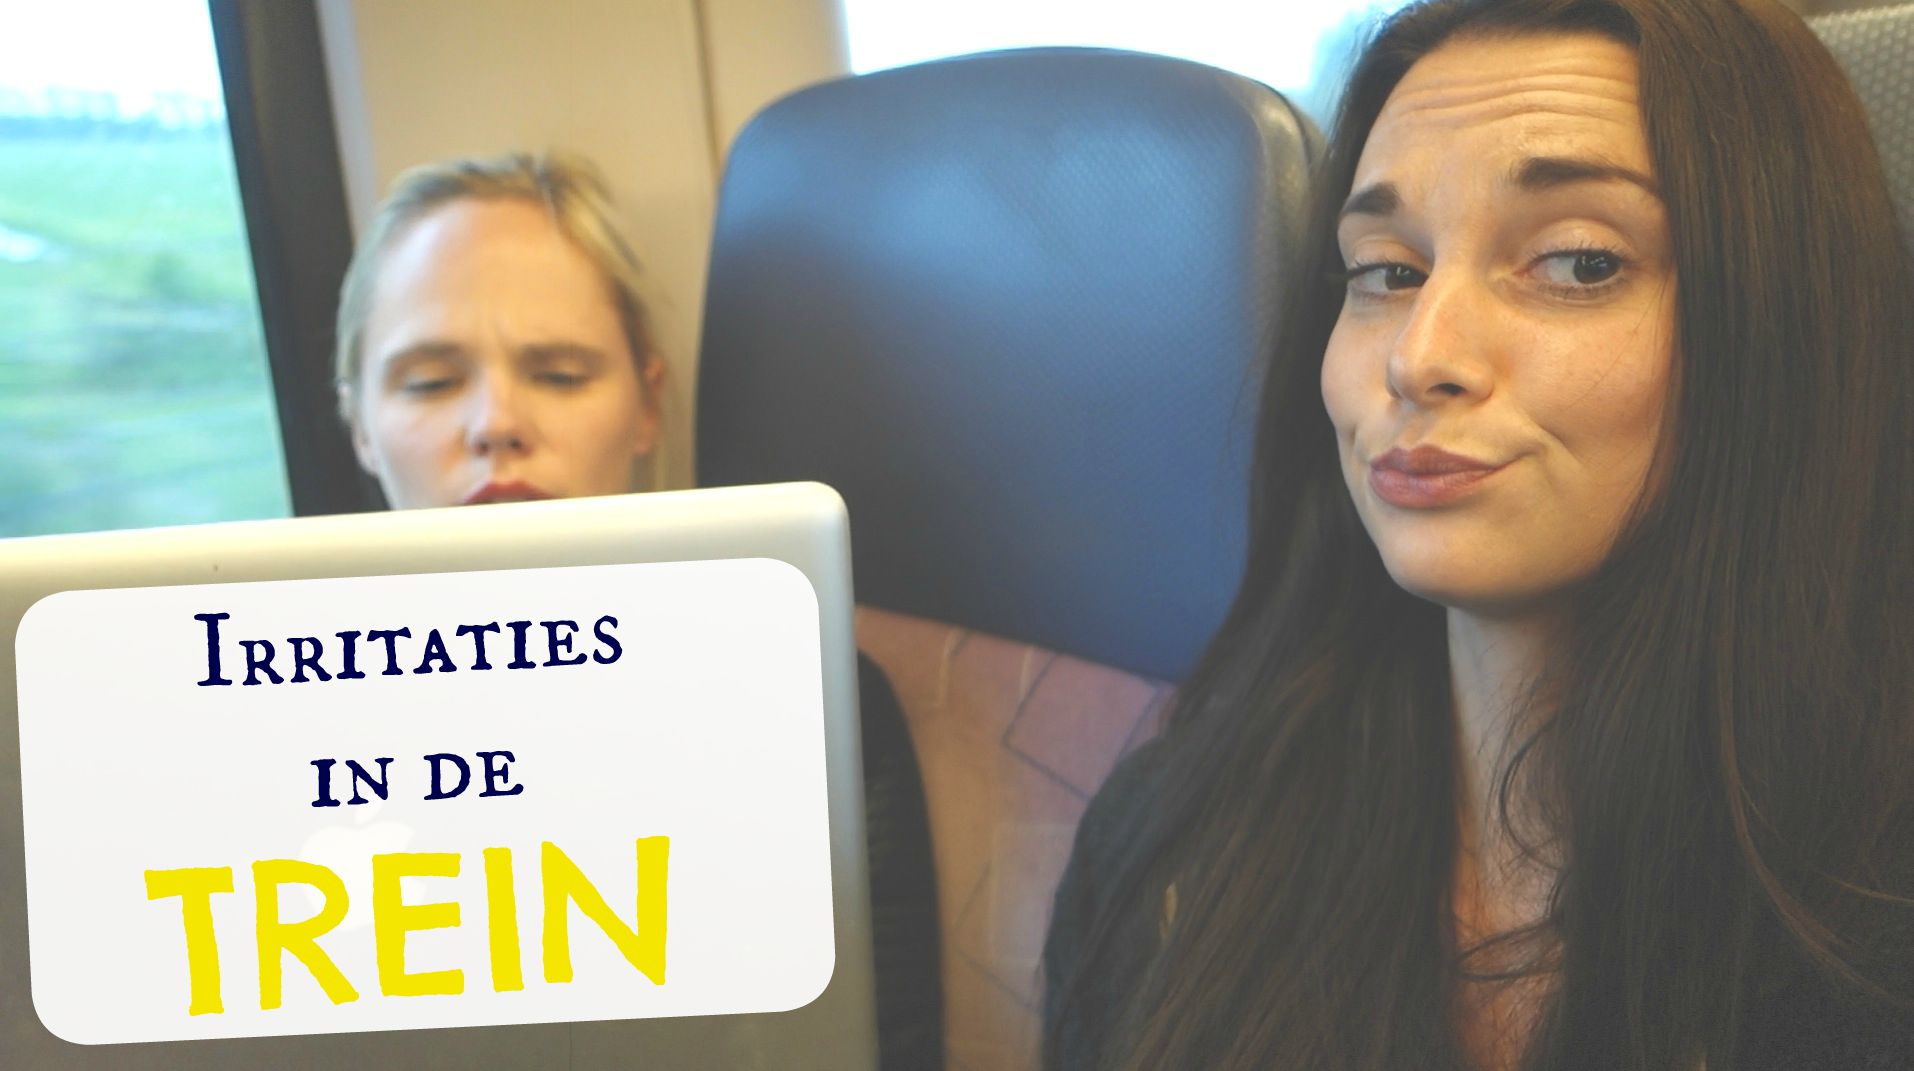 irritaties in de trein